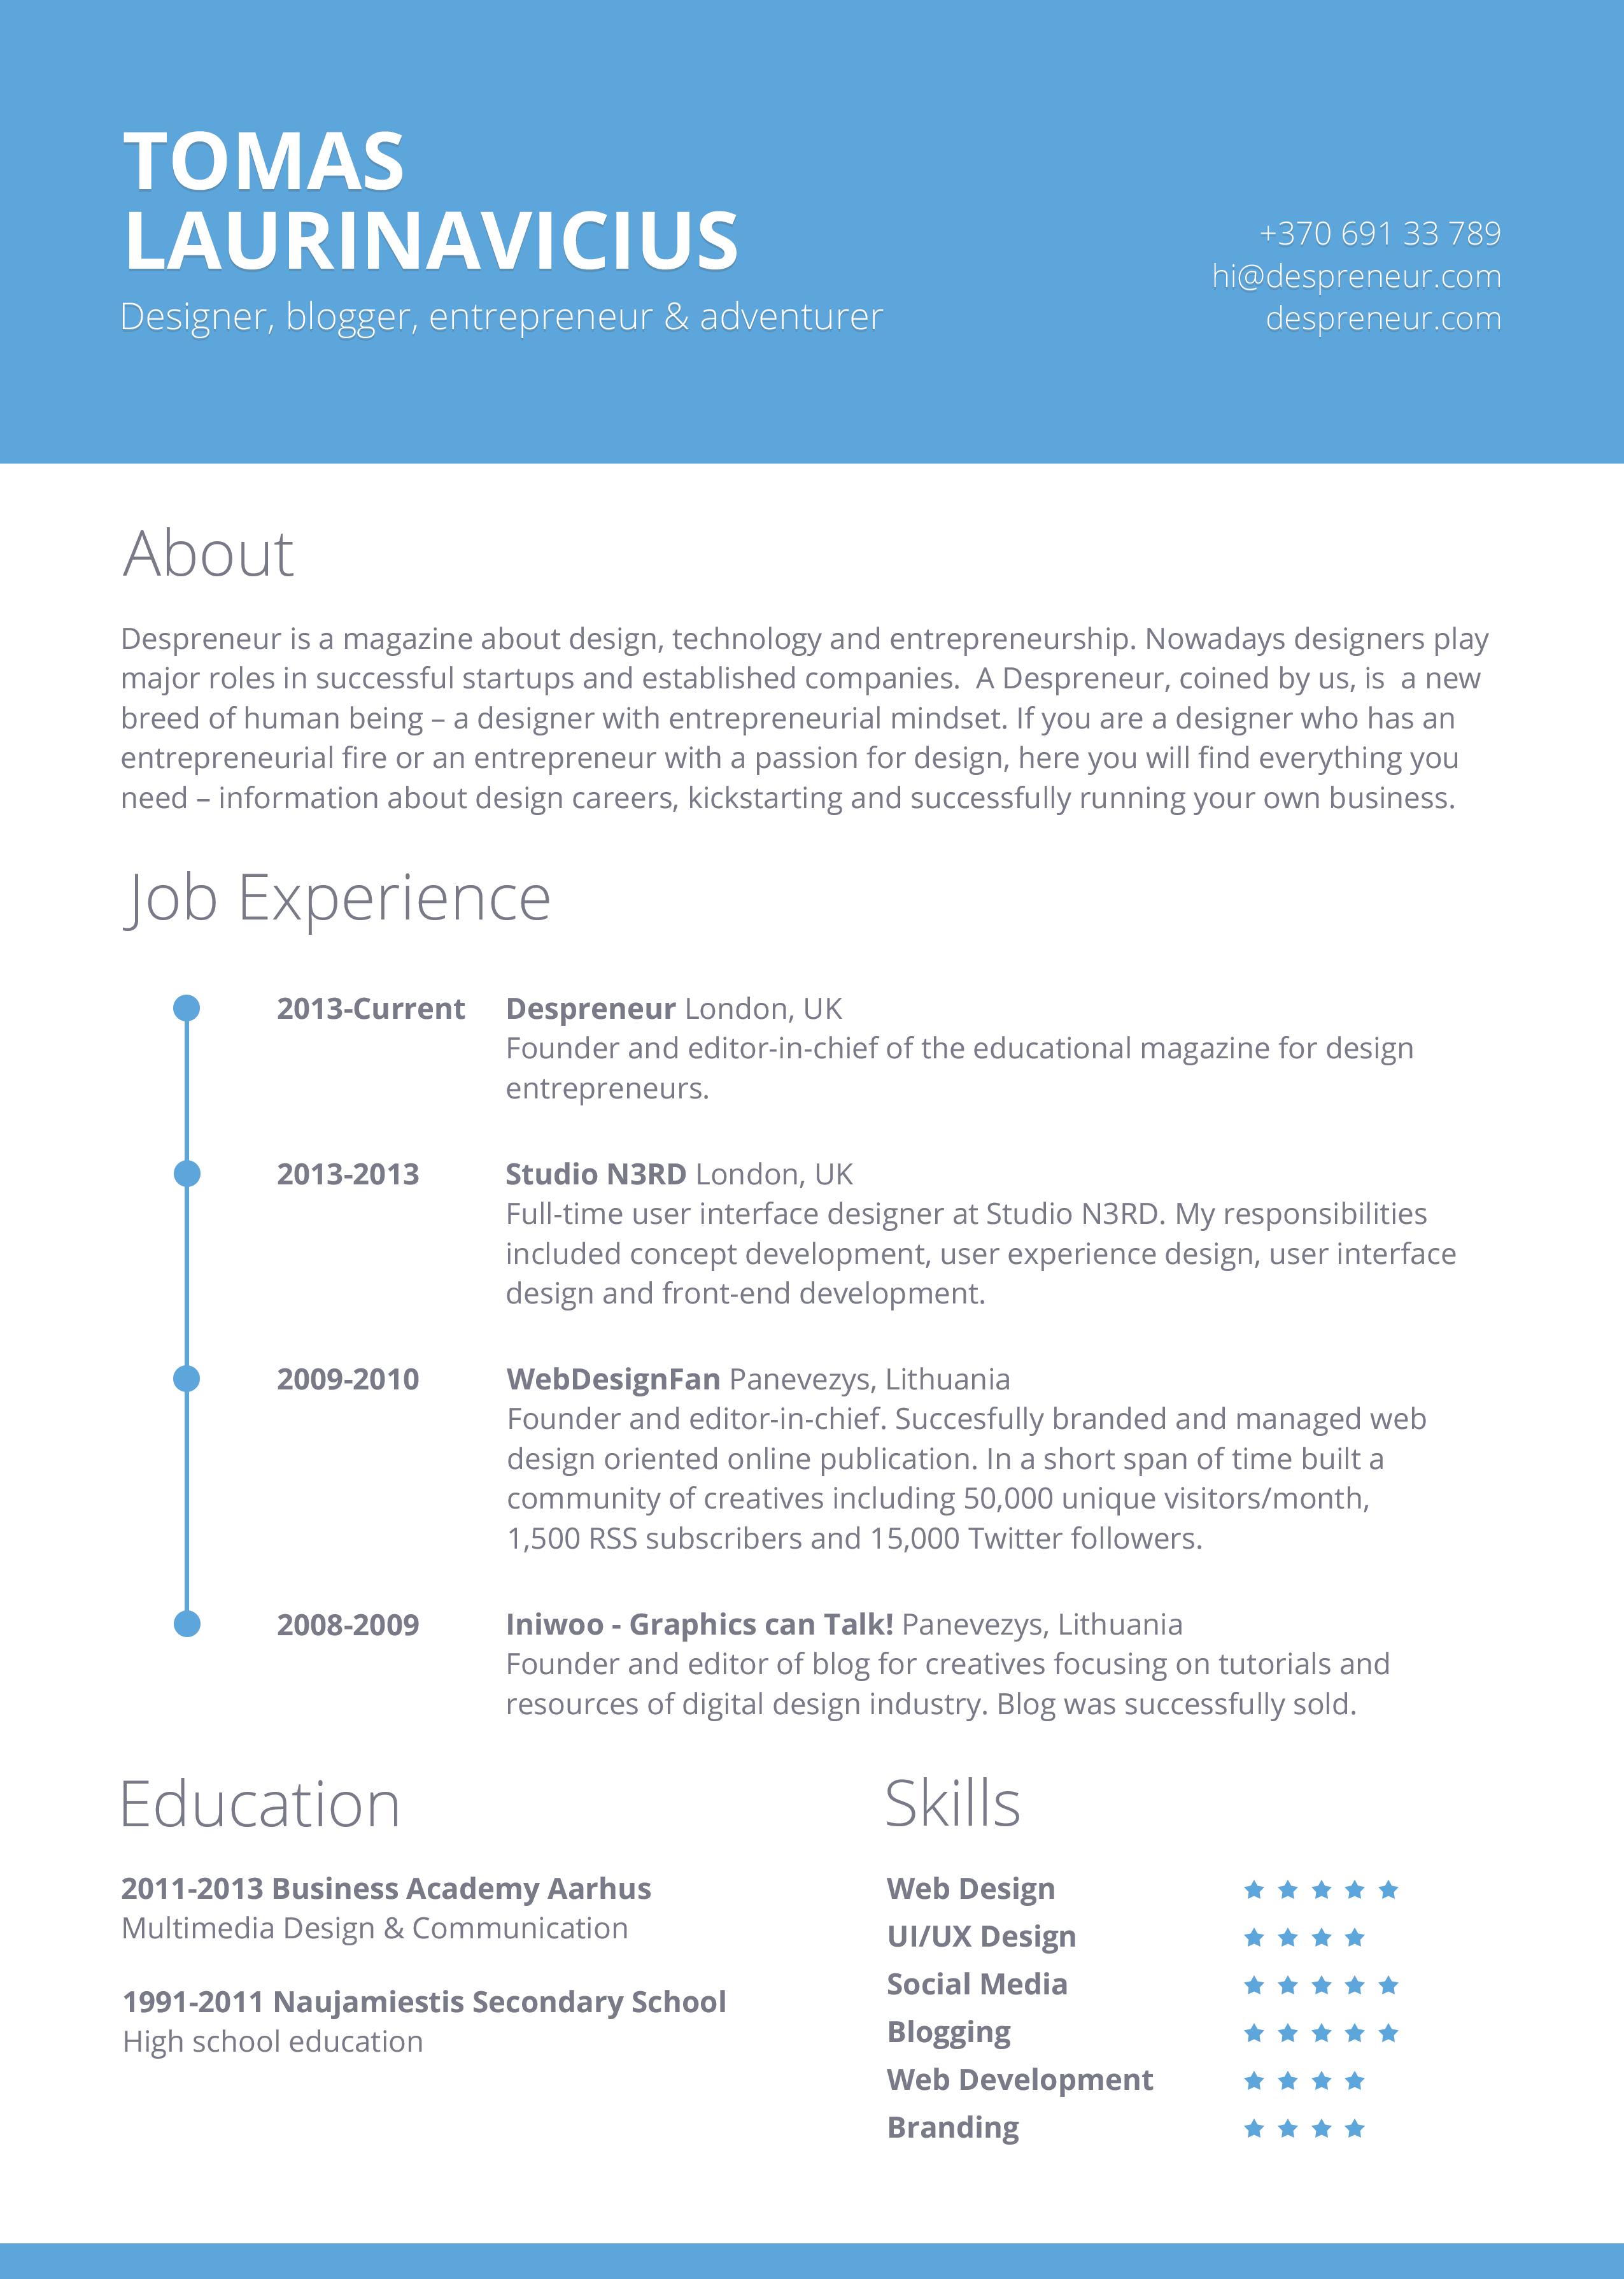 Sample Resume Template Download Sample Resume Template Download - Free resume templates for teens